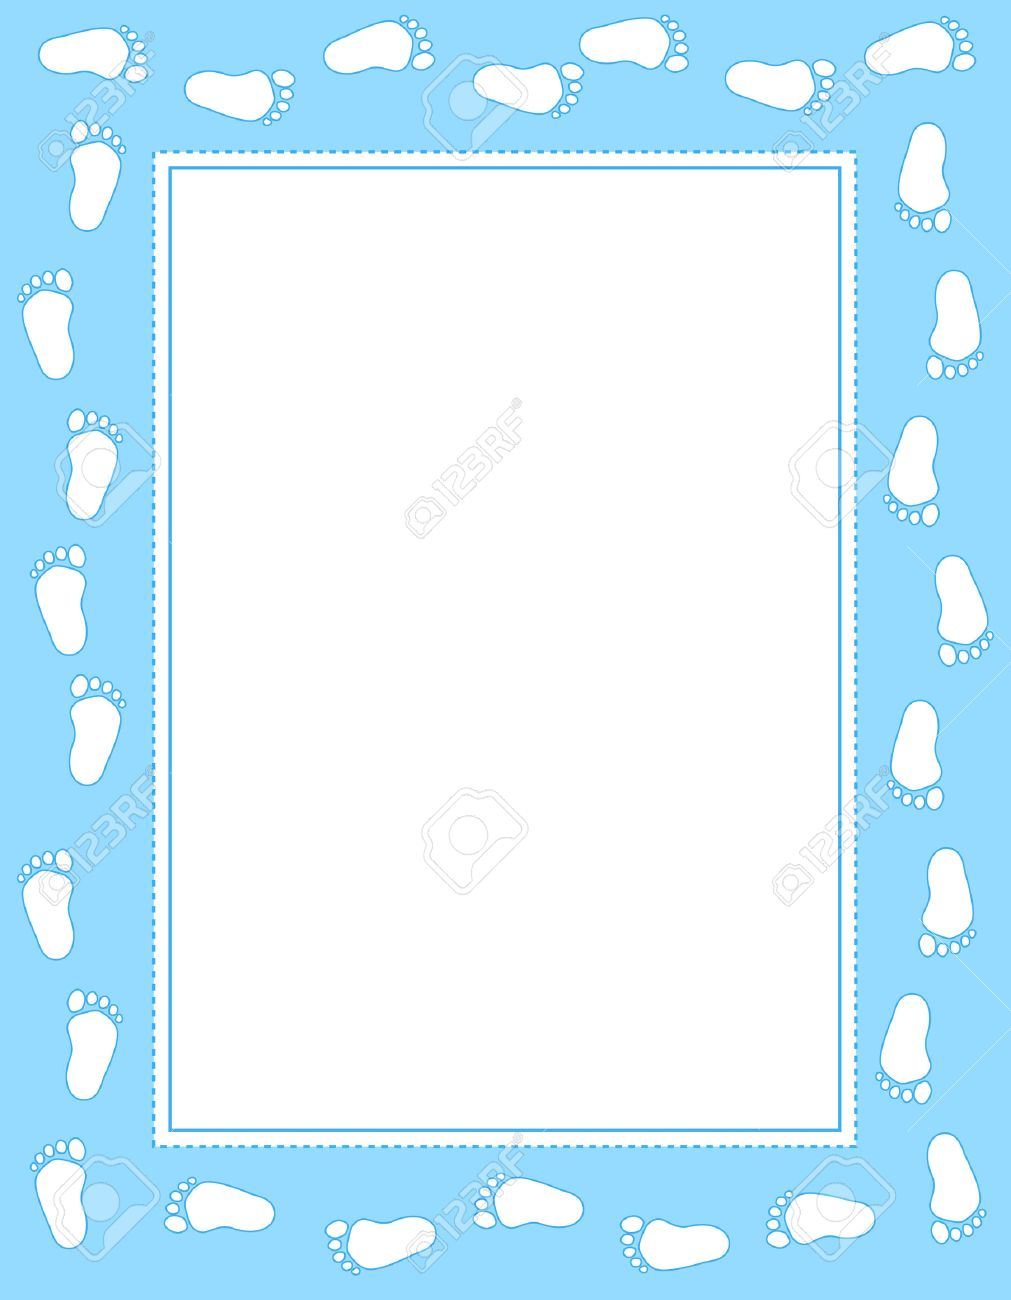 Baby Boy Footprints Border / Frame With Empty White Space To ...